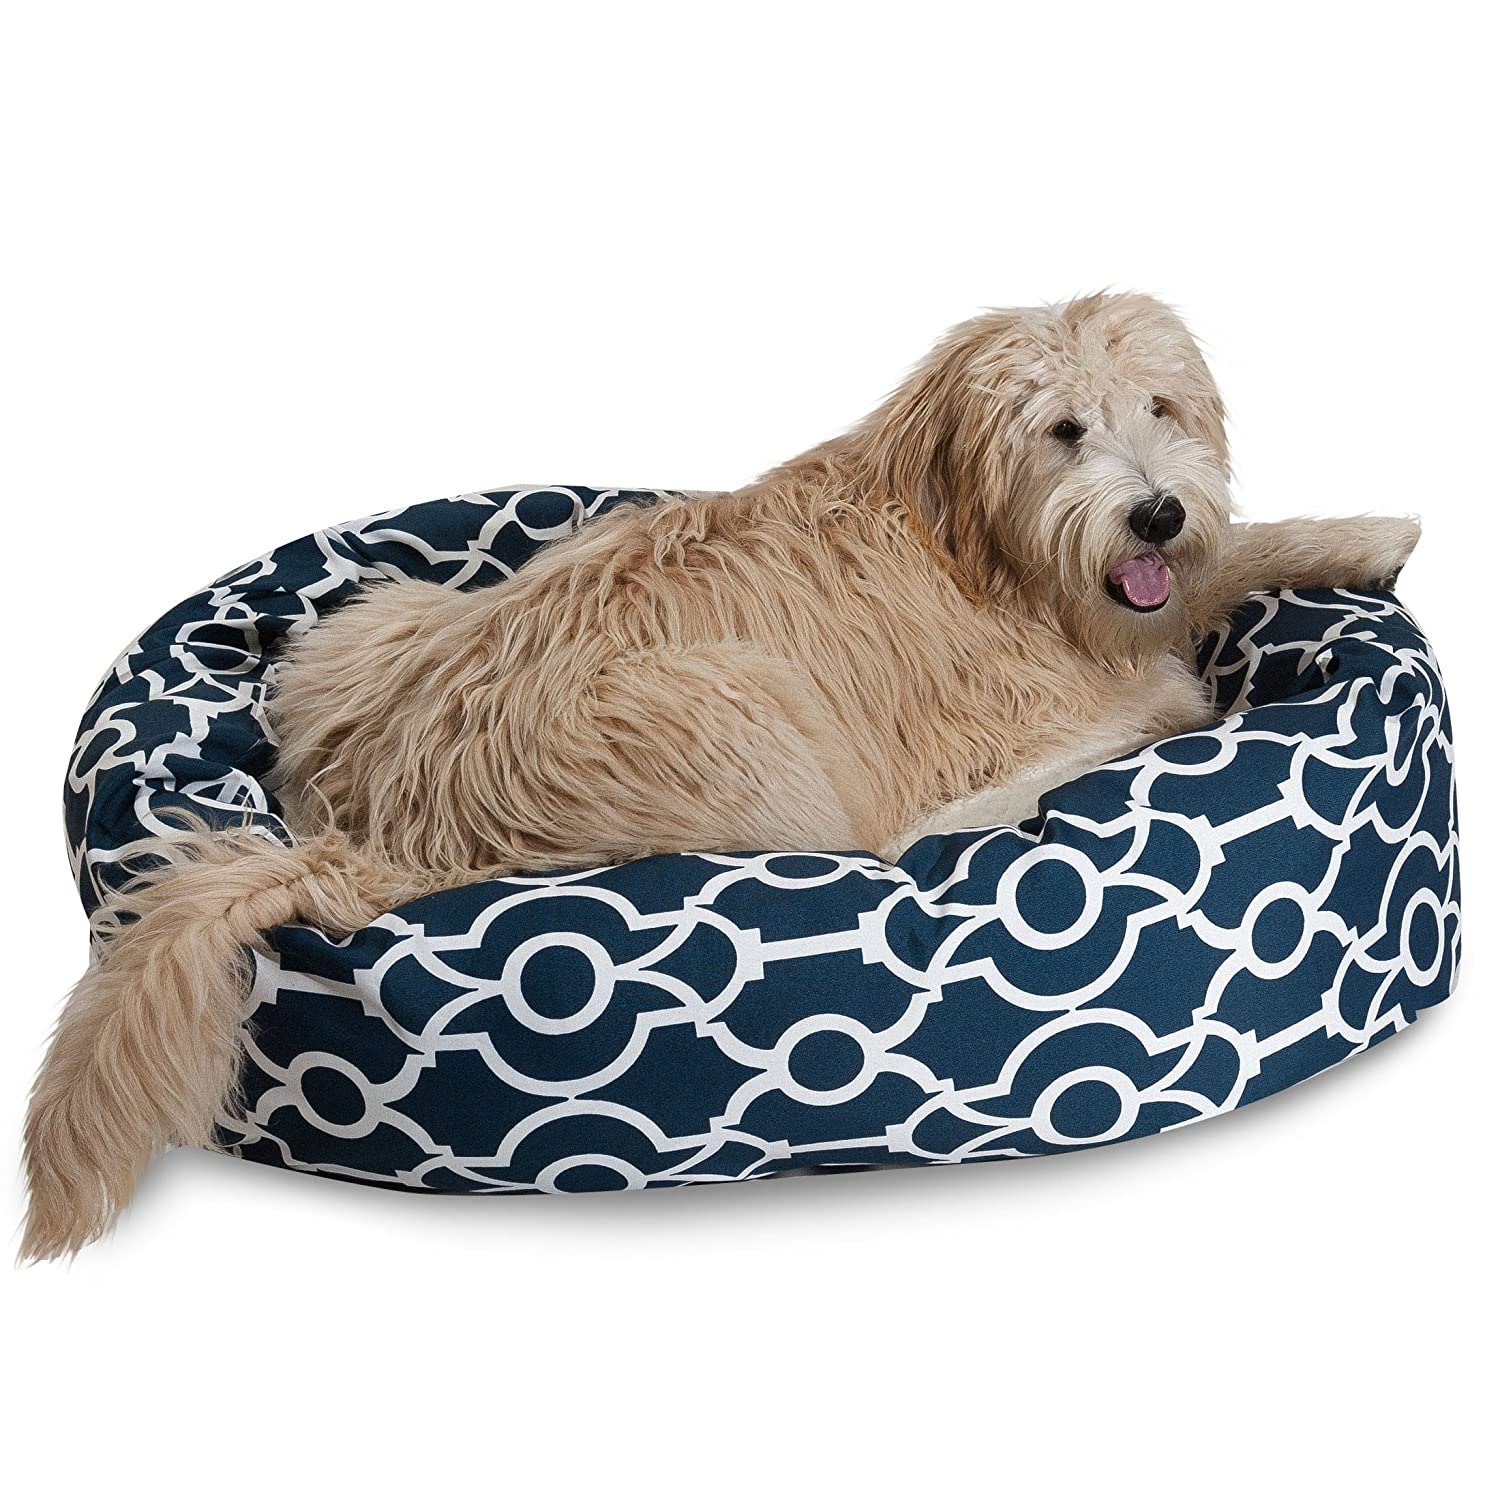 Navy bluee 81.28 cm Navy bluee 81.28 cm Majestic Pet Athens Sherpa Bagel Bed, 32 , Navy